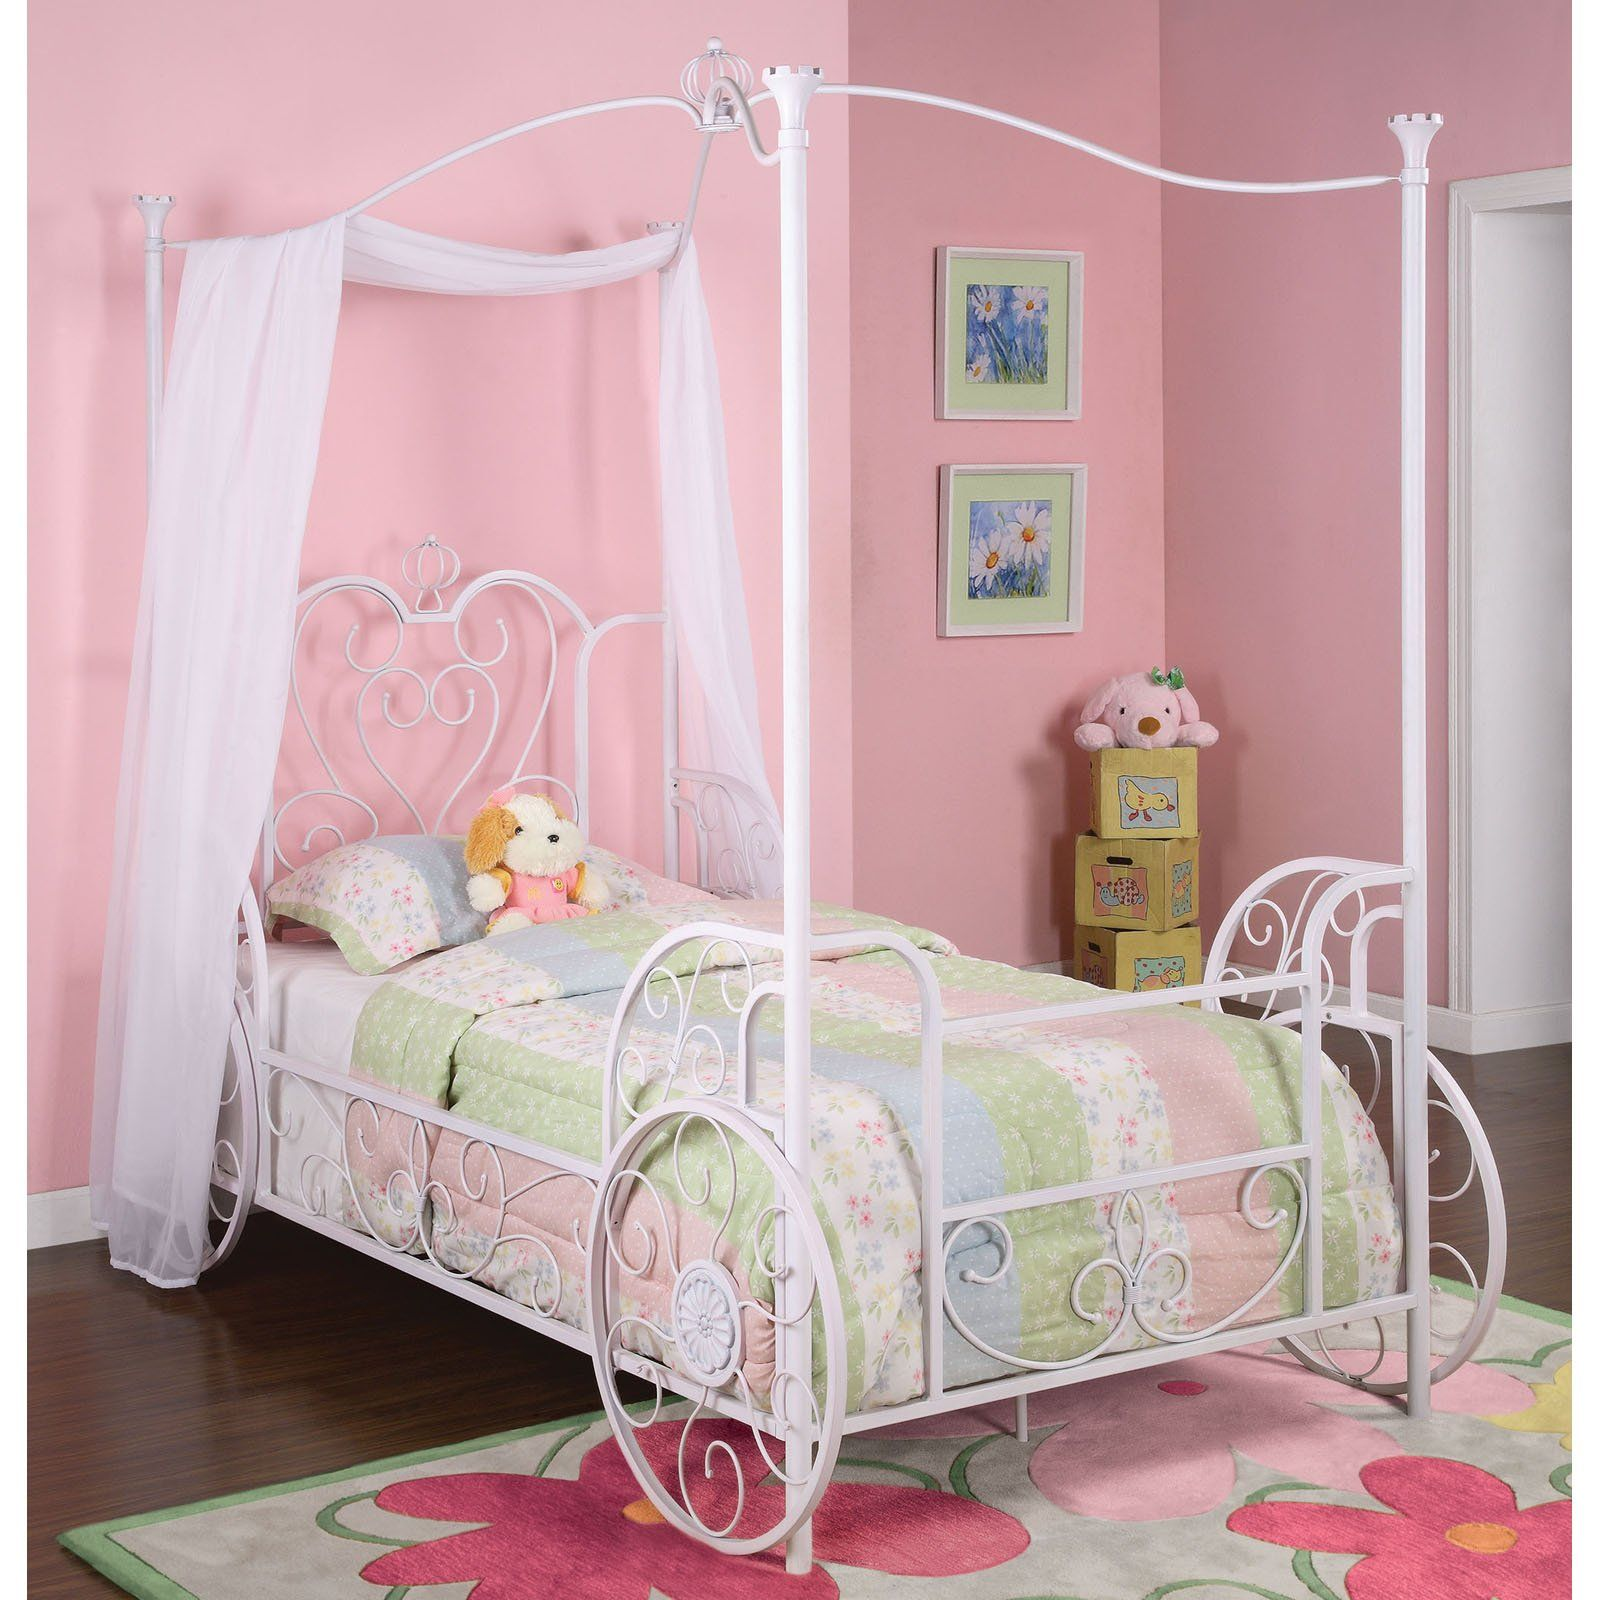 Kids bed canopy ideas - Princess Emily Carriage Canopy Twin Size Bed By Powell Furniture